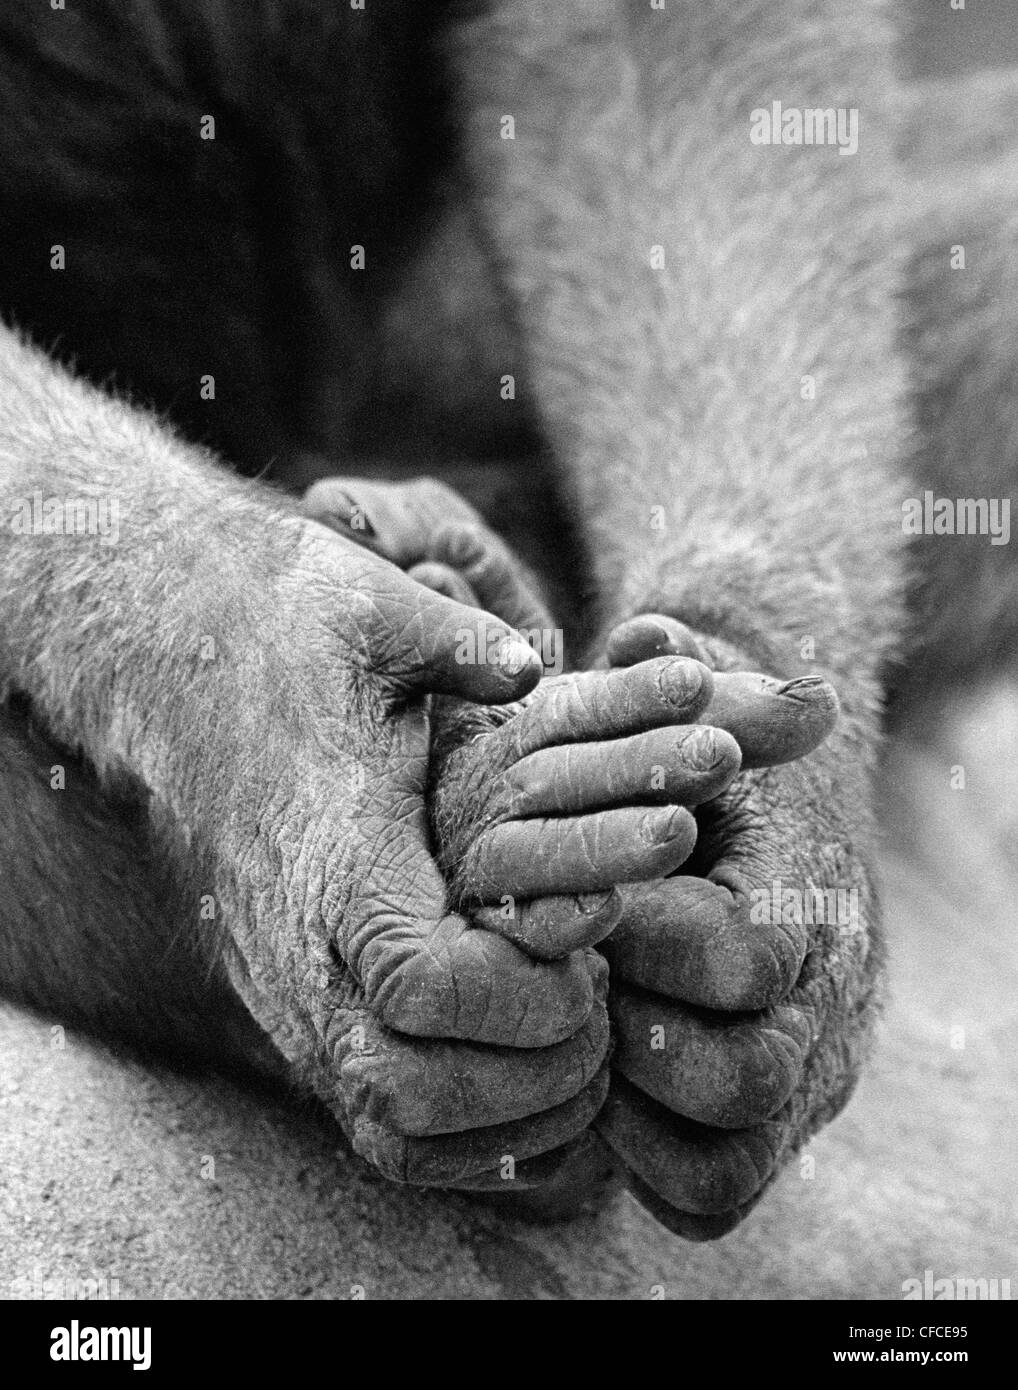 Ape holding feet with hands at San Diego Zoo, California, USA - Stock Image